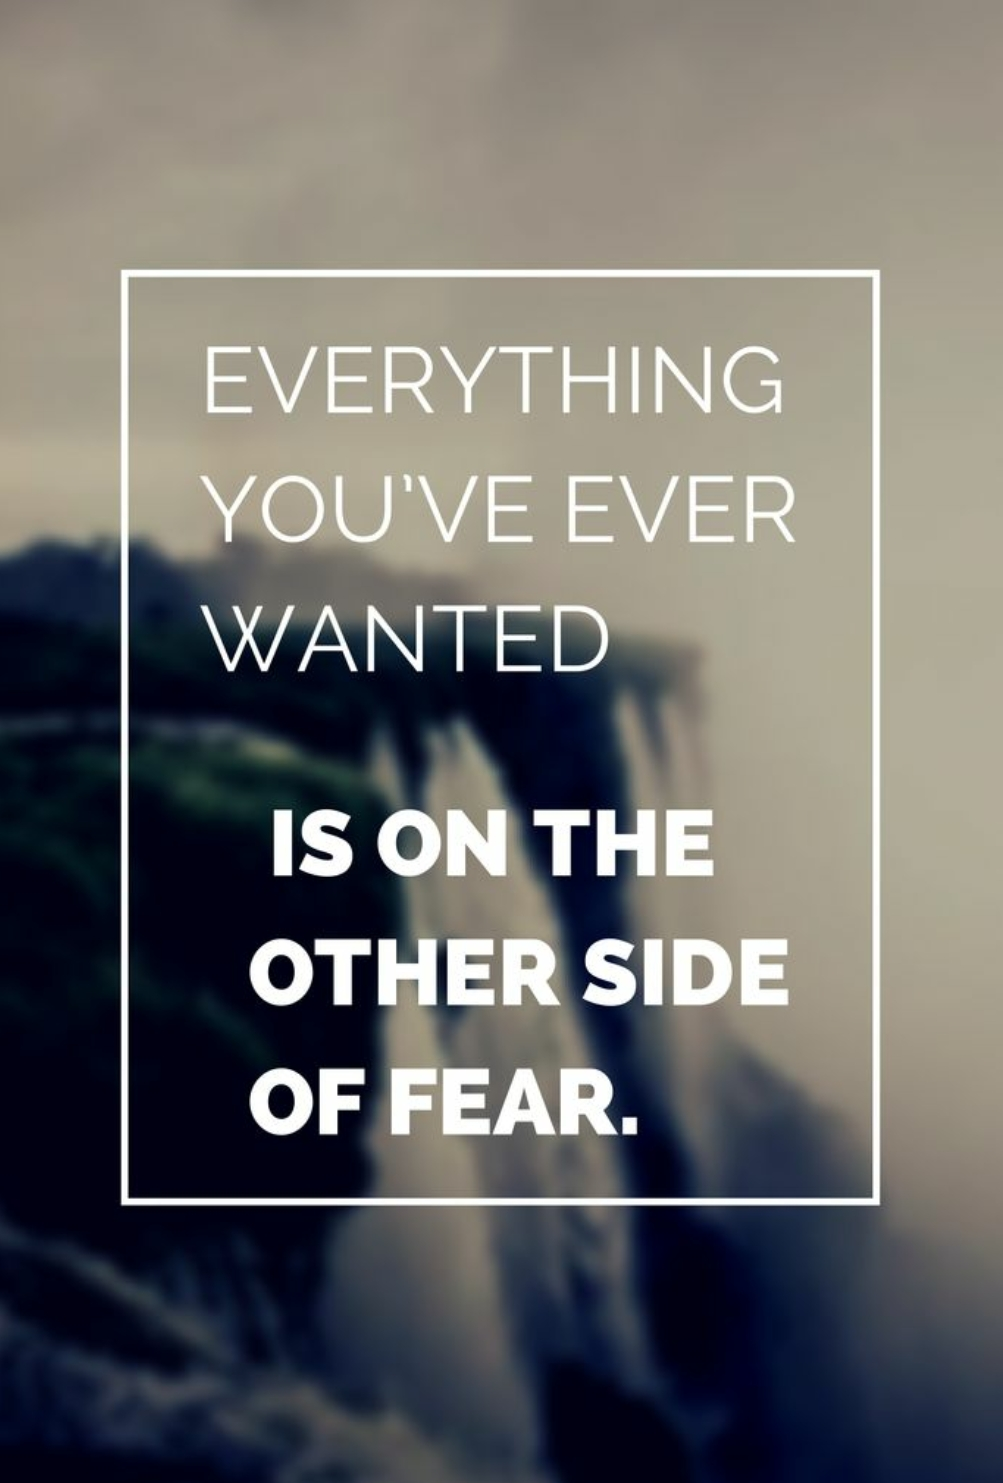 [IMAGE] Everything you've ever wanted is on the other side of fear